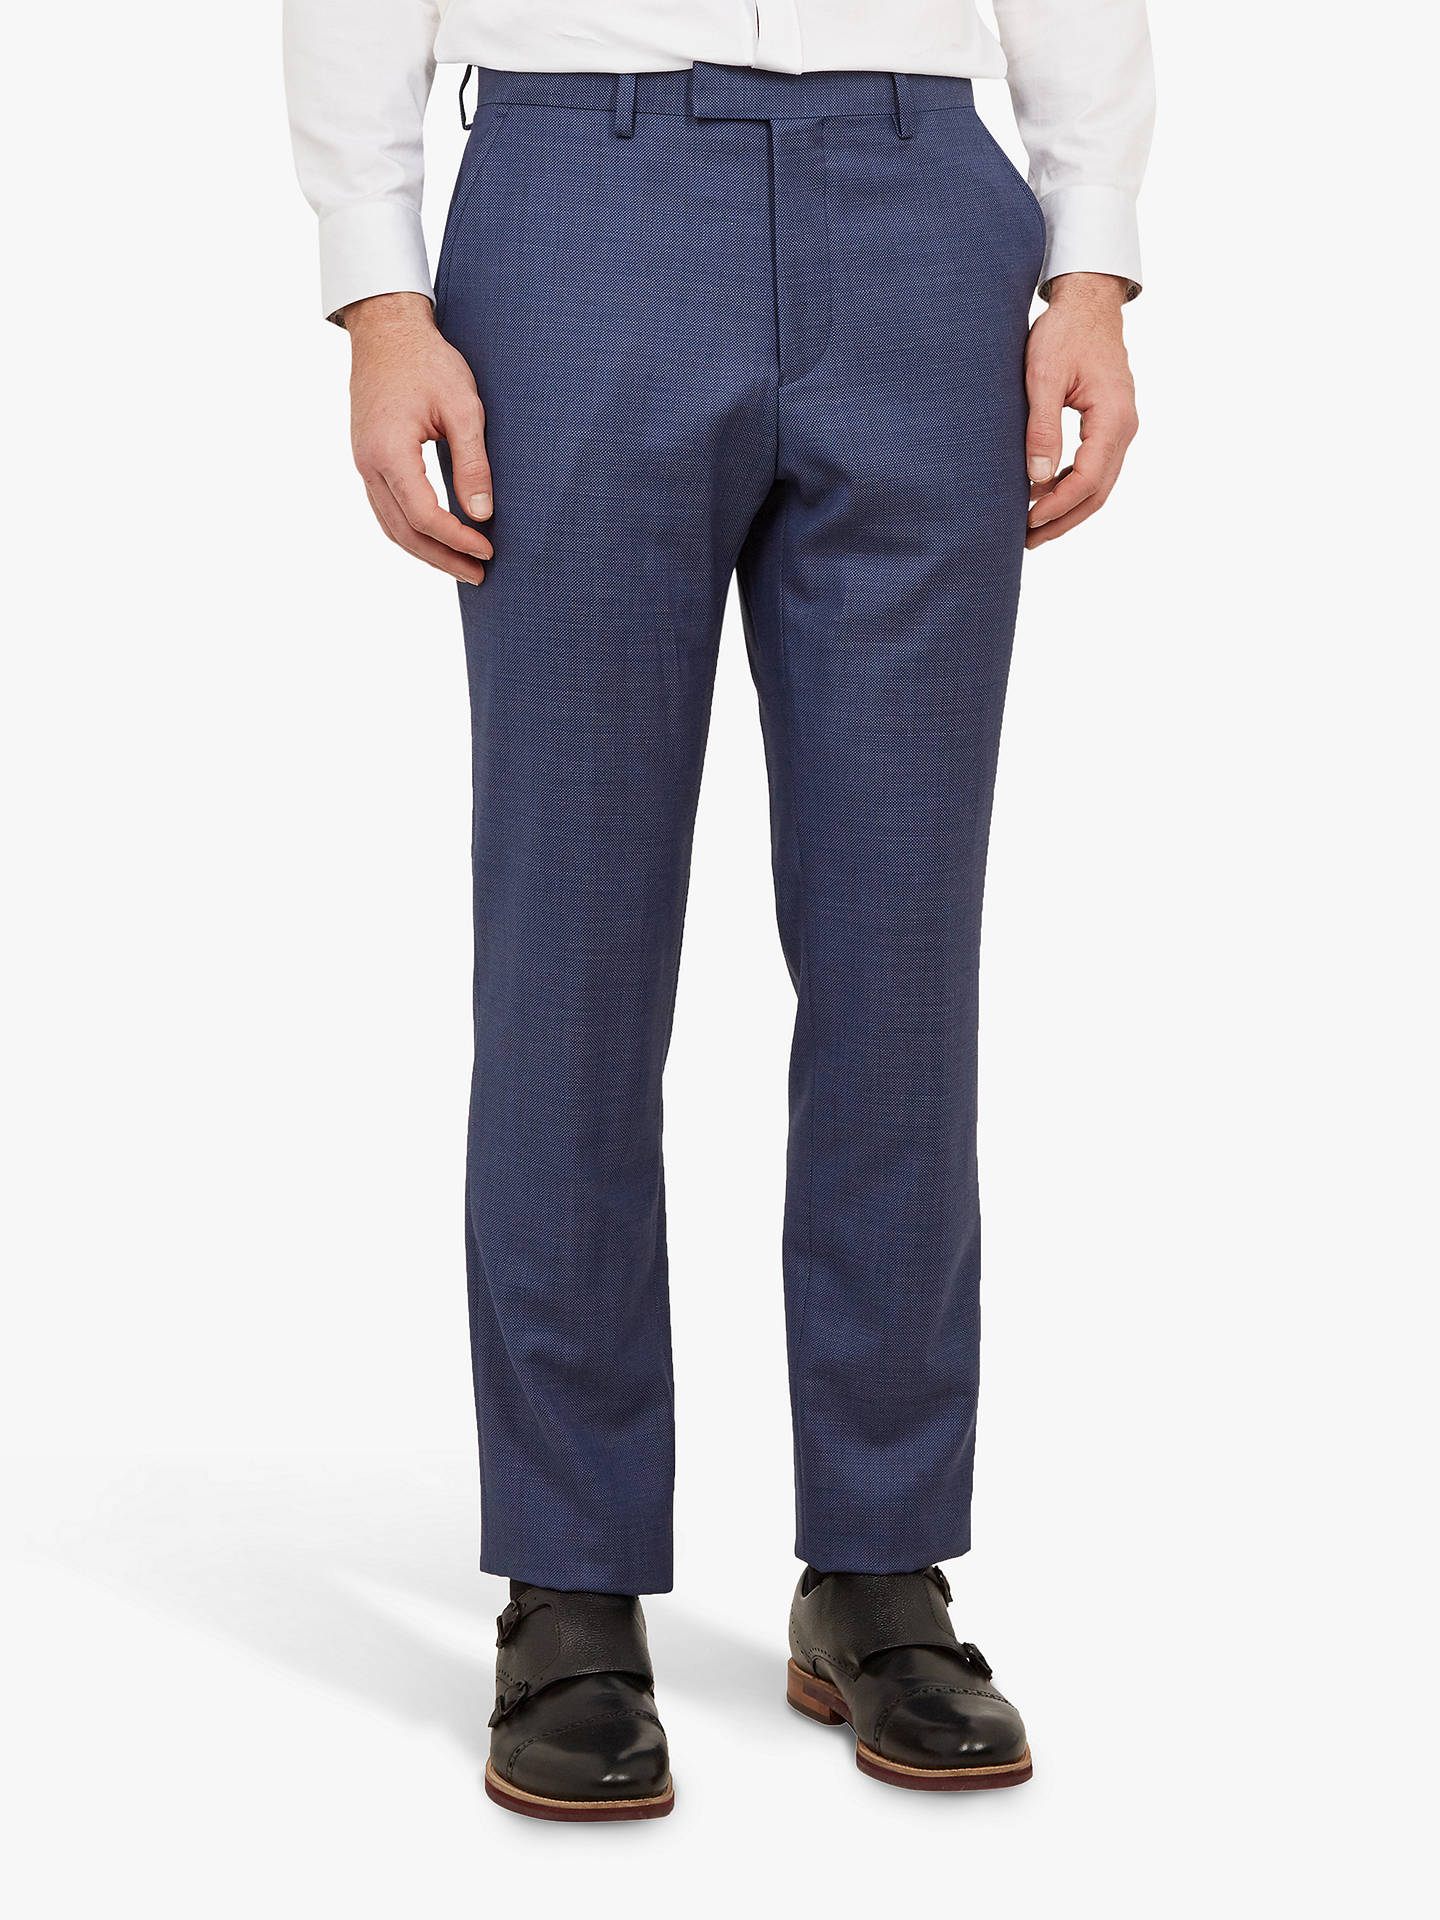 9127acc86 Buy Ted Baker Fuzion Birdseye Wool Tailored Suit Trousers